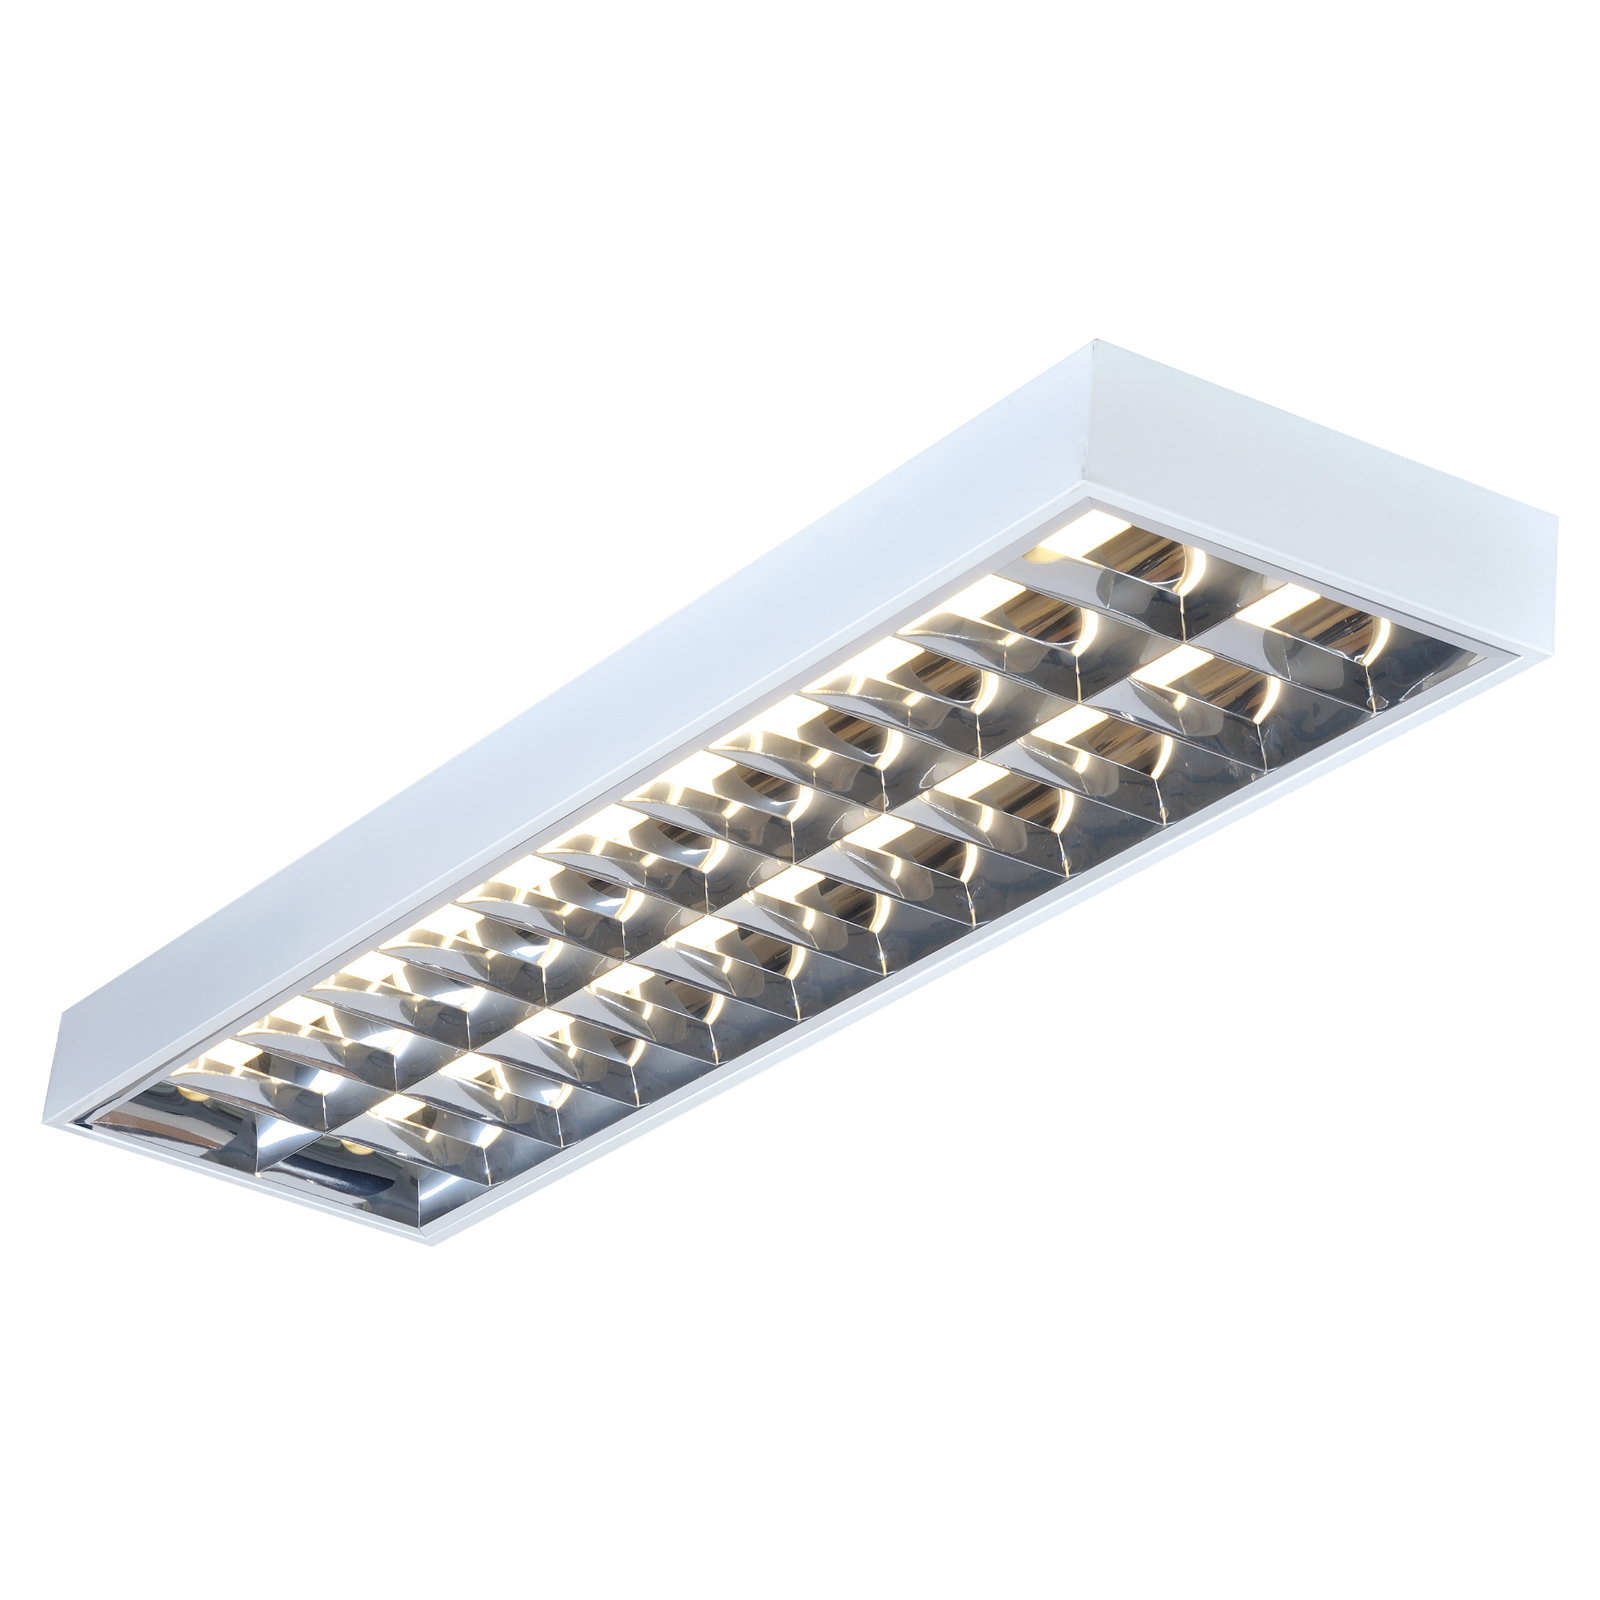 IP20 2x70W 6ft T8 Surface Mounted Emergency Fluorescent Fitting 1785x300x80mm